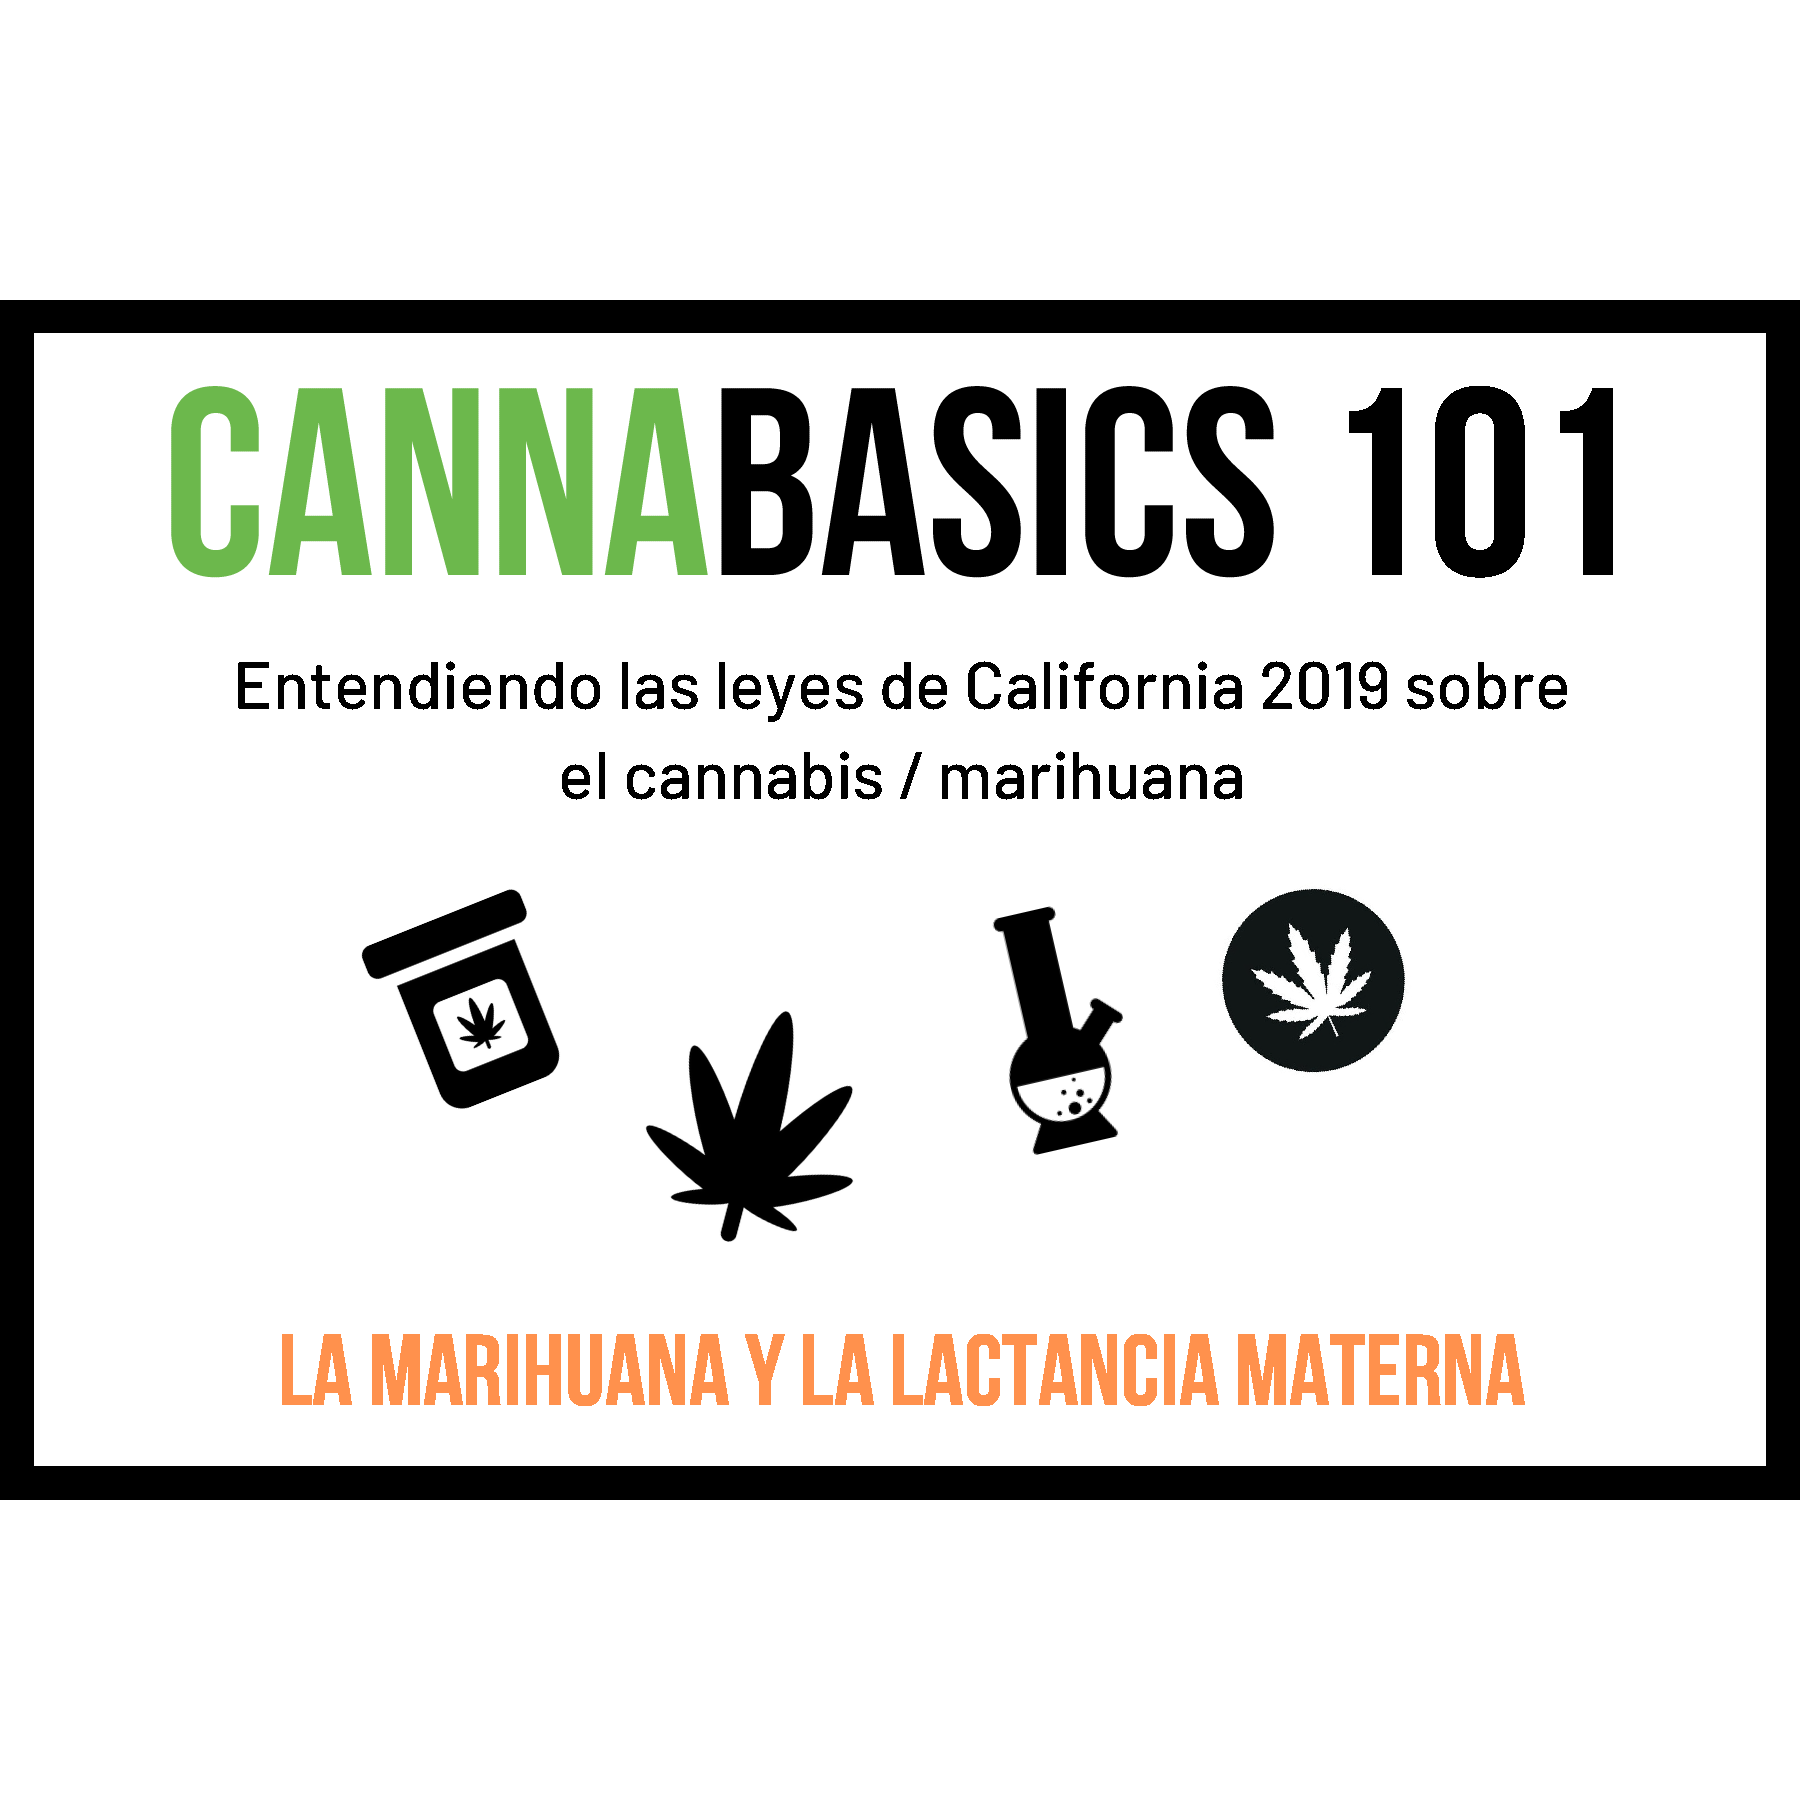 CannaBASICS 101 Spanish